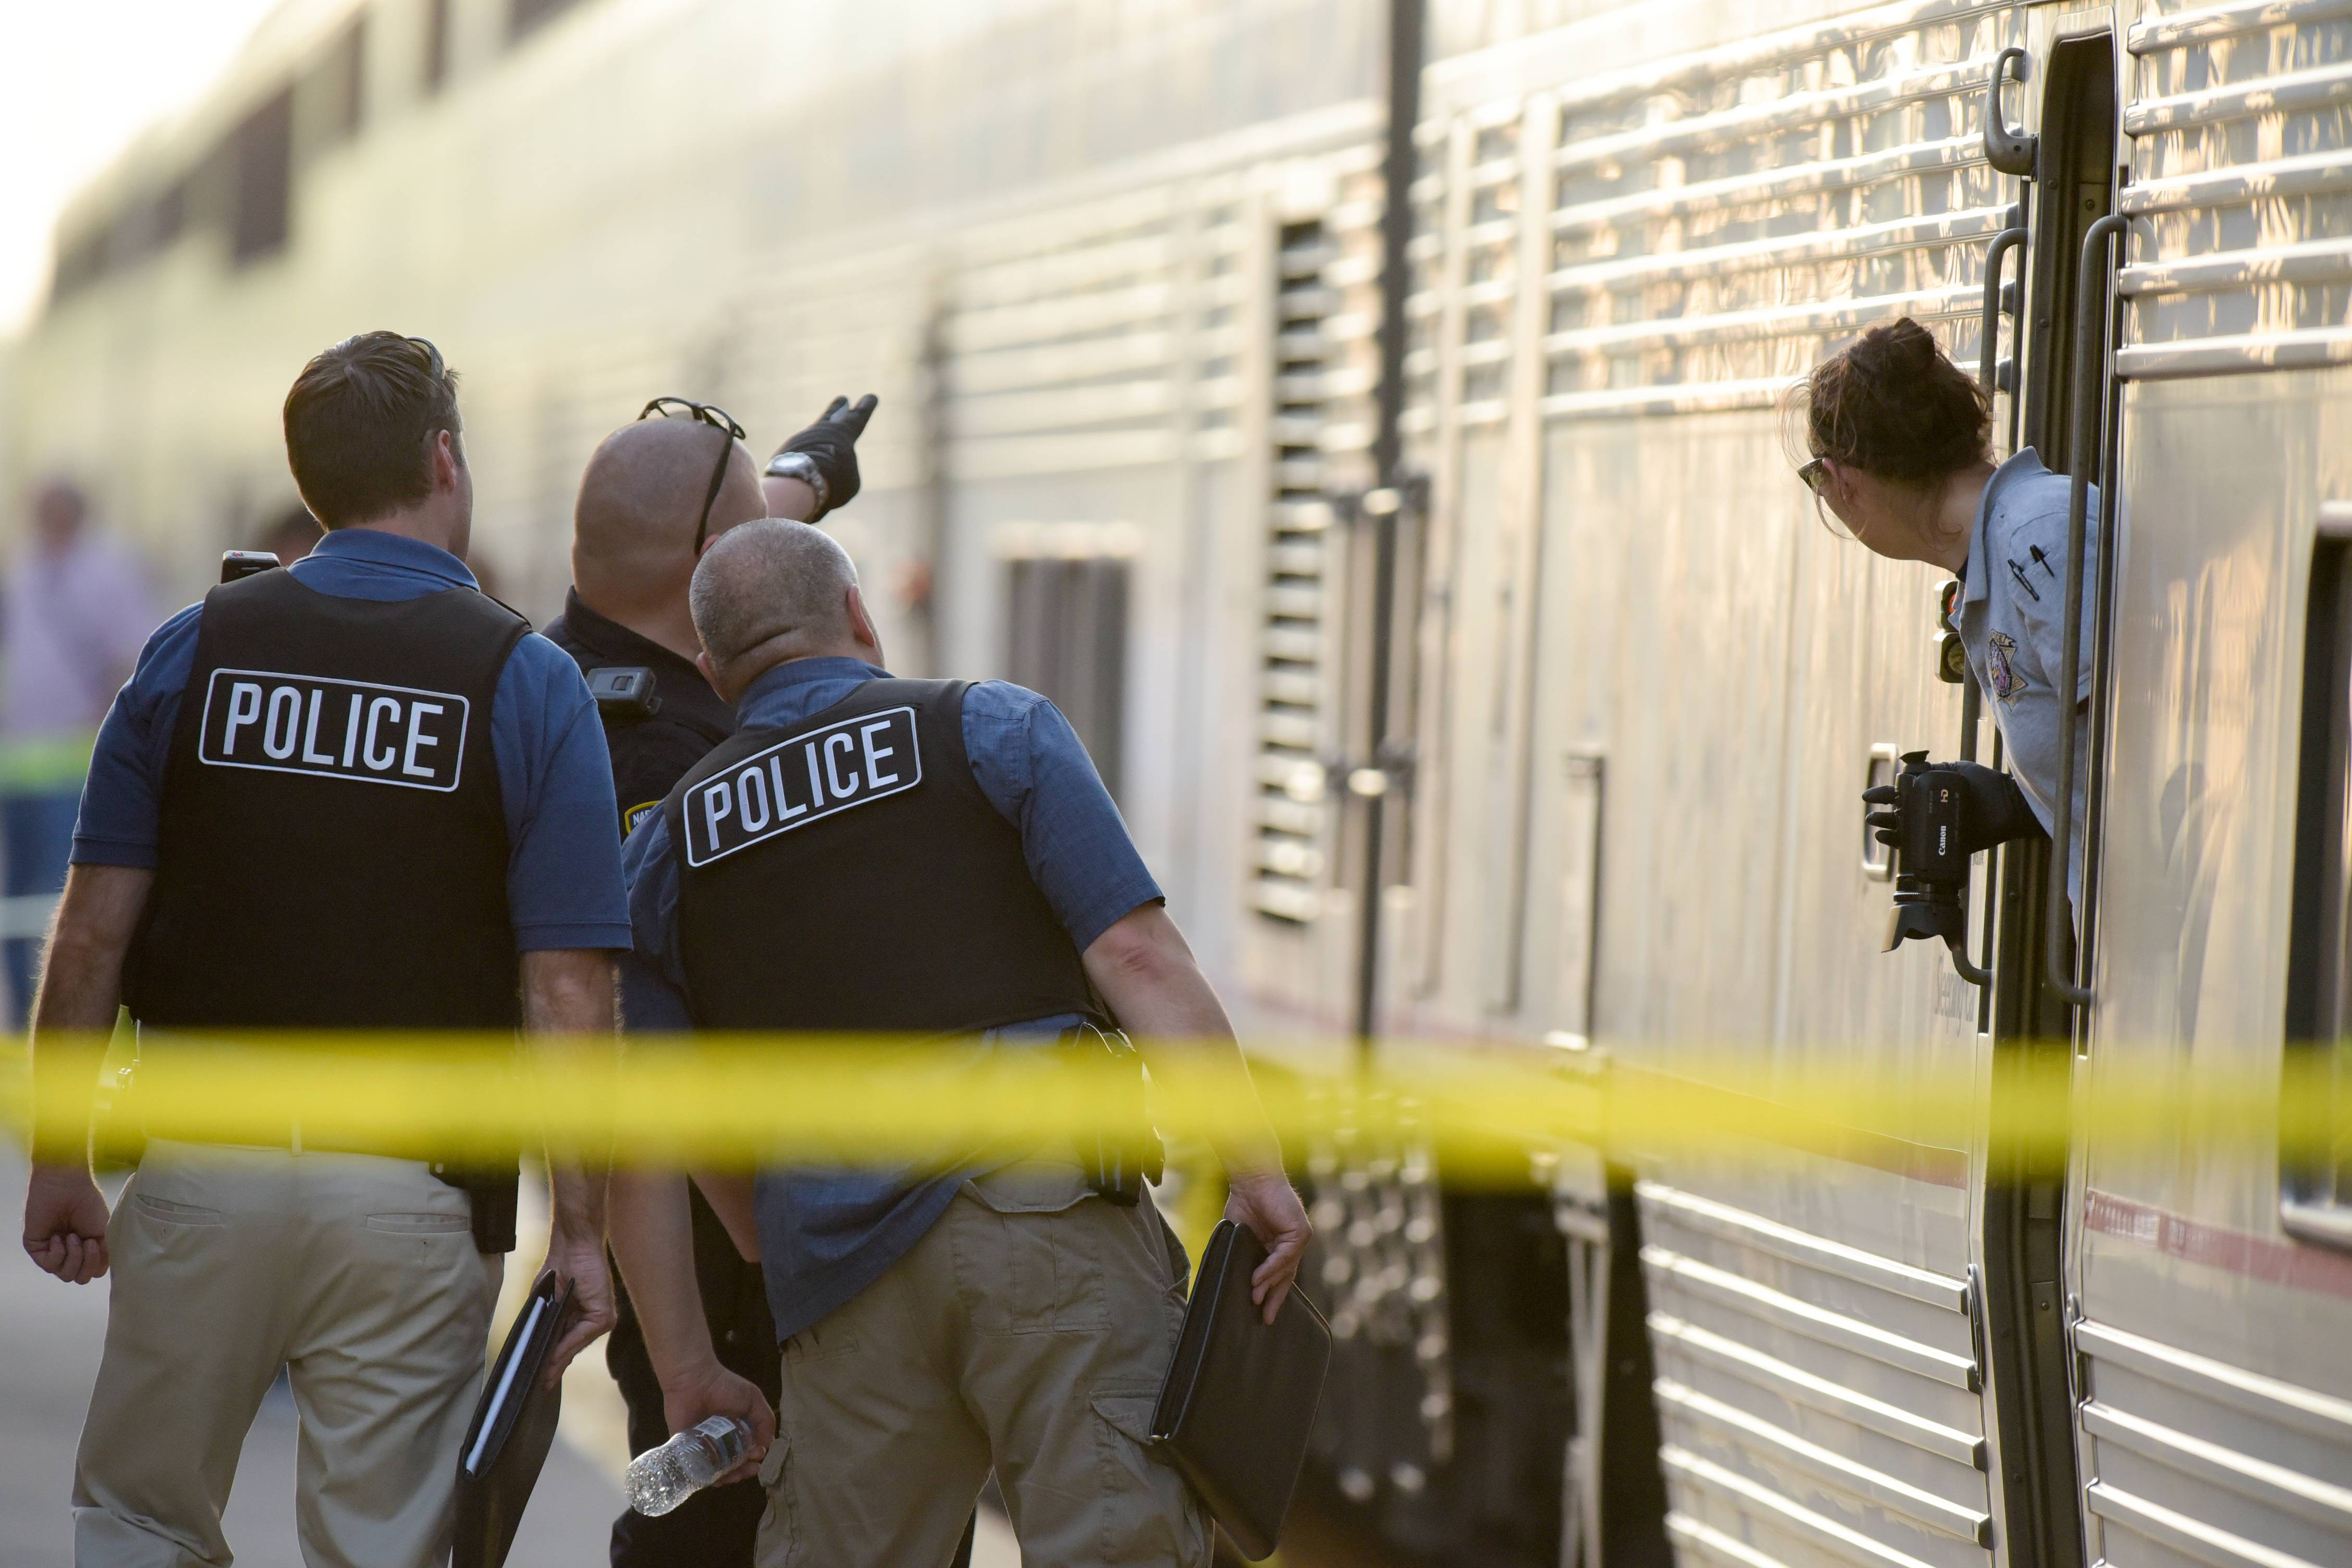 Police investigate the shooting of an Amtrak conductor at the Naperville train station on May 16. Edward Klein, 79, of West Allis, Wisconsin, is being held on $1.5 million bail after being charged with attempted murder and aggravated battery in the shooting.